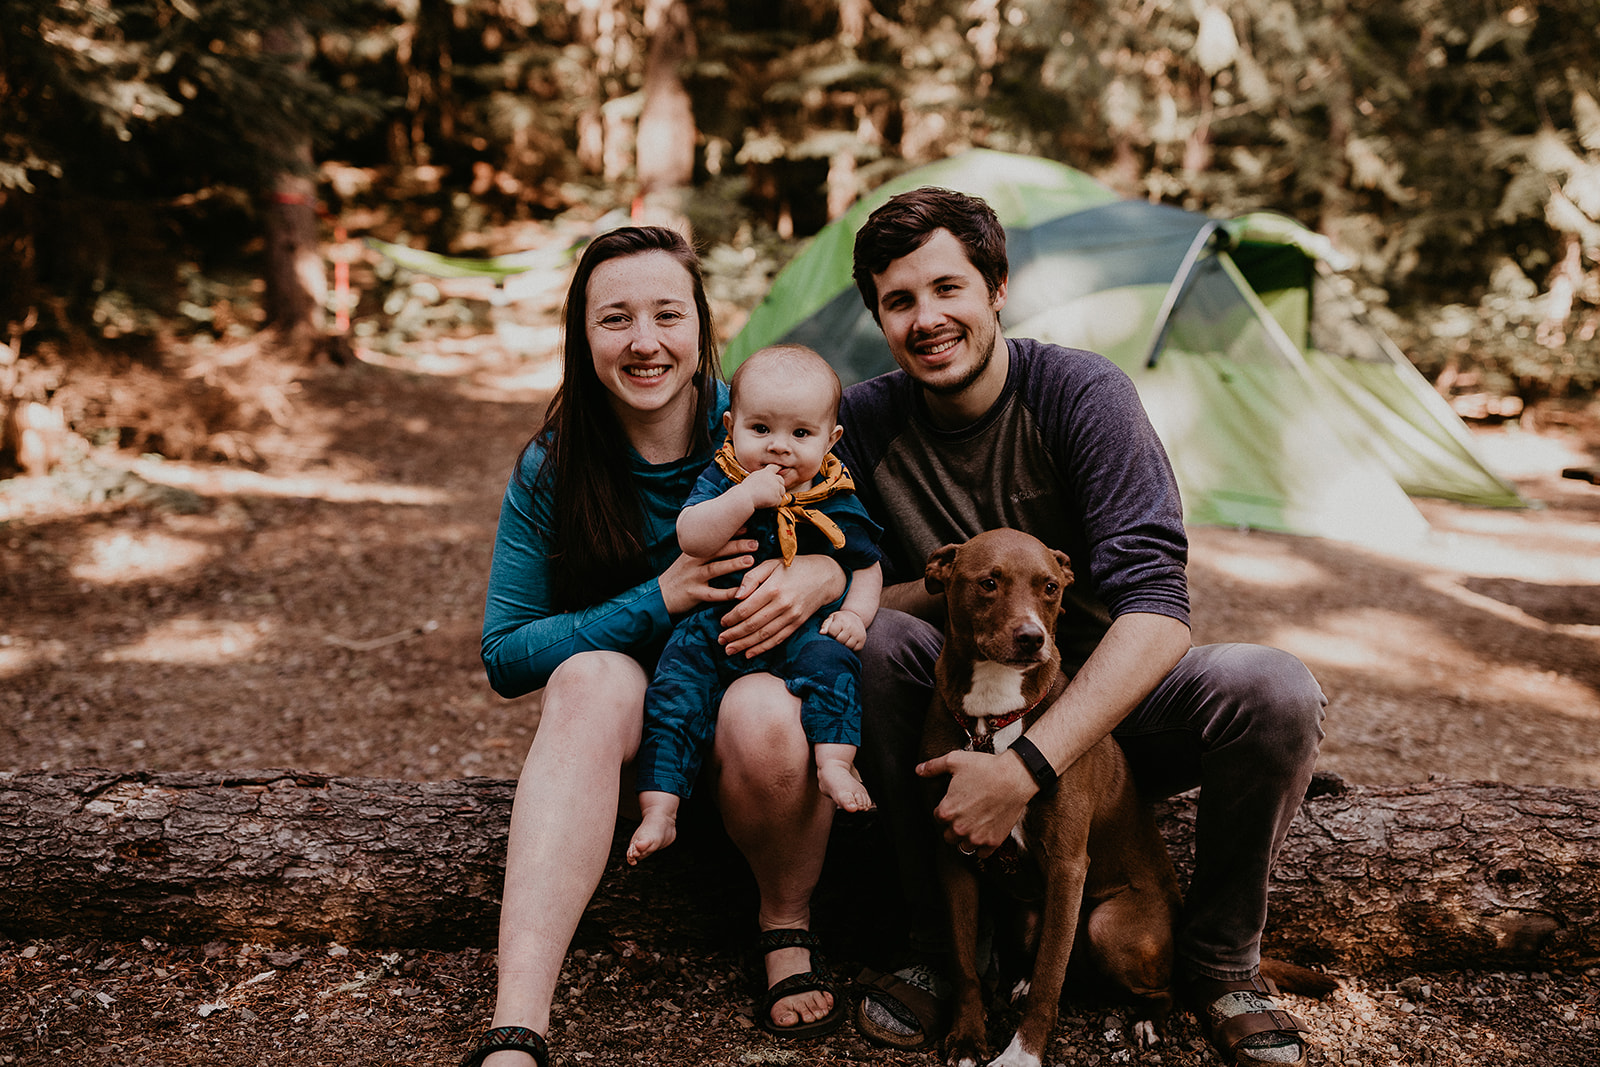 kachess-lake-camping-family-portraits-megan-gallagher-photography_(146_of_335).jpg